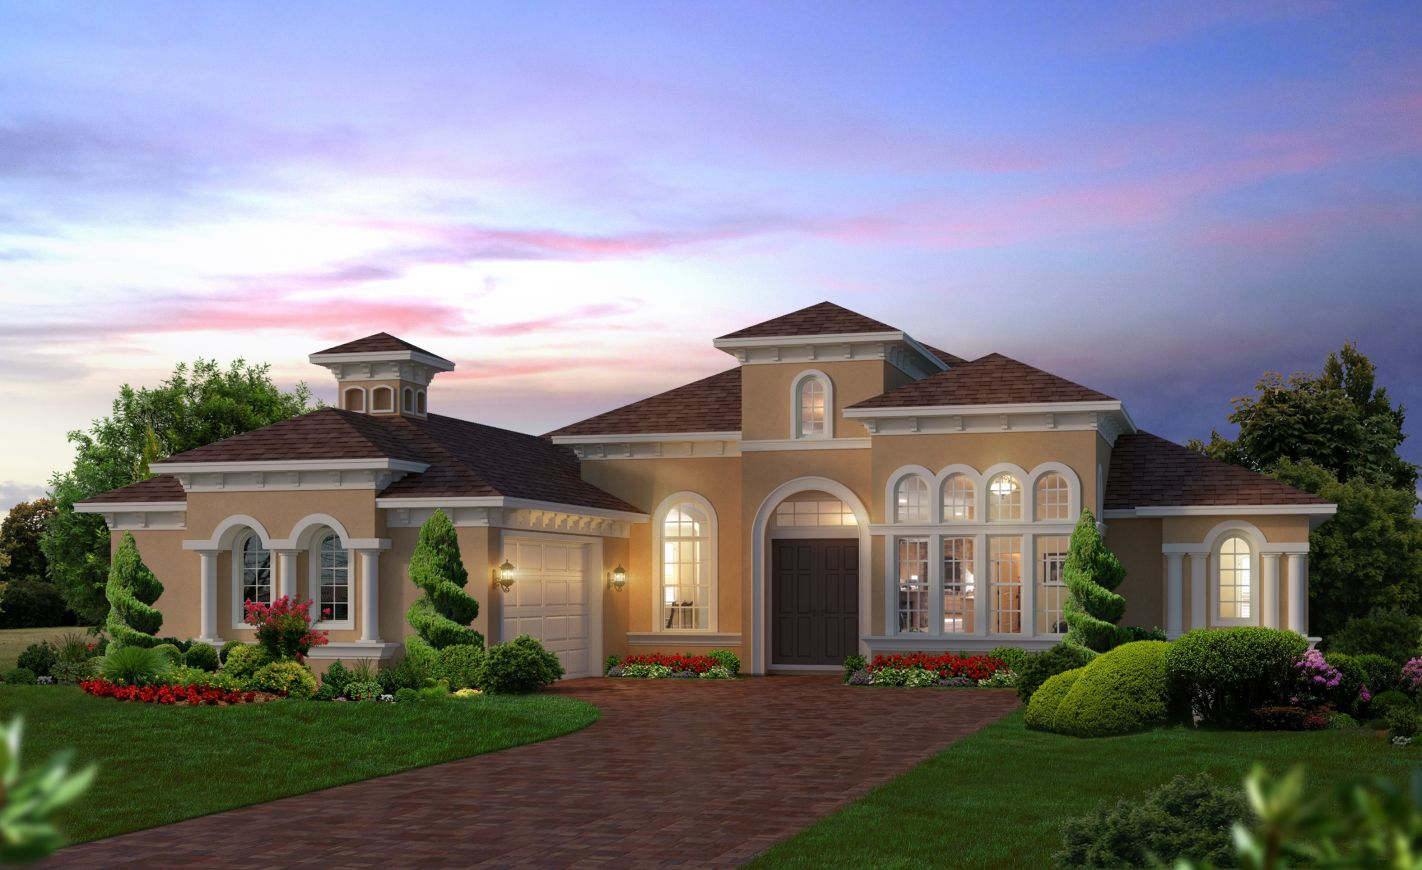 New homes in grand haven palm coast ici homes for Florida house plans for sale